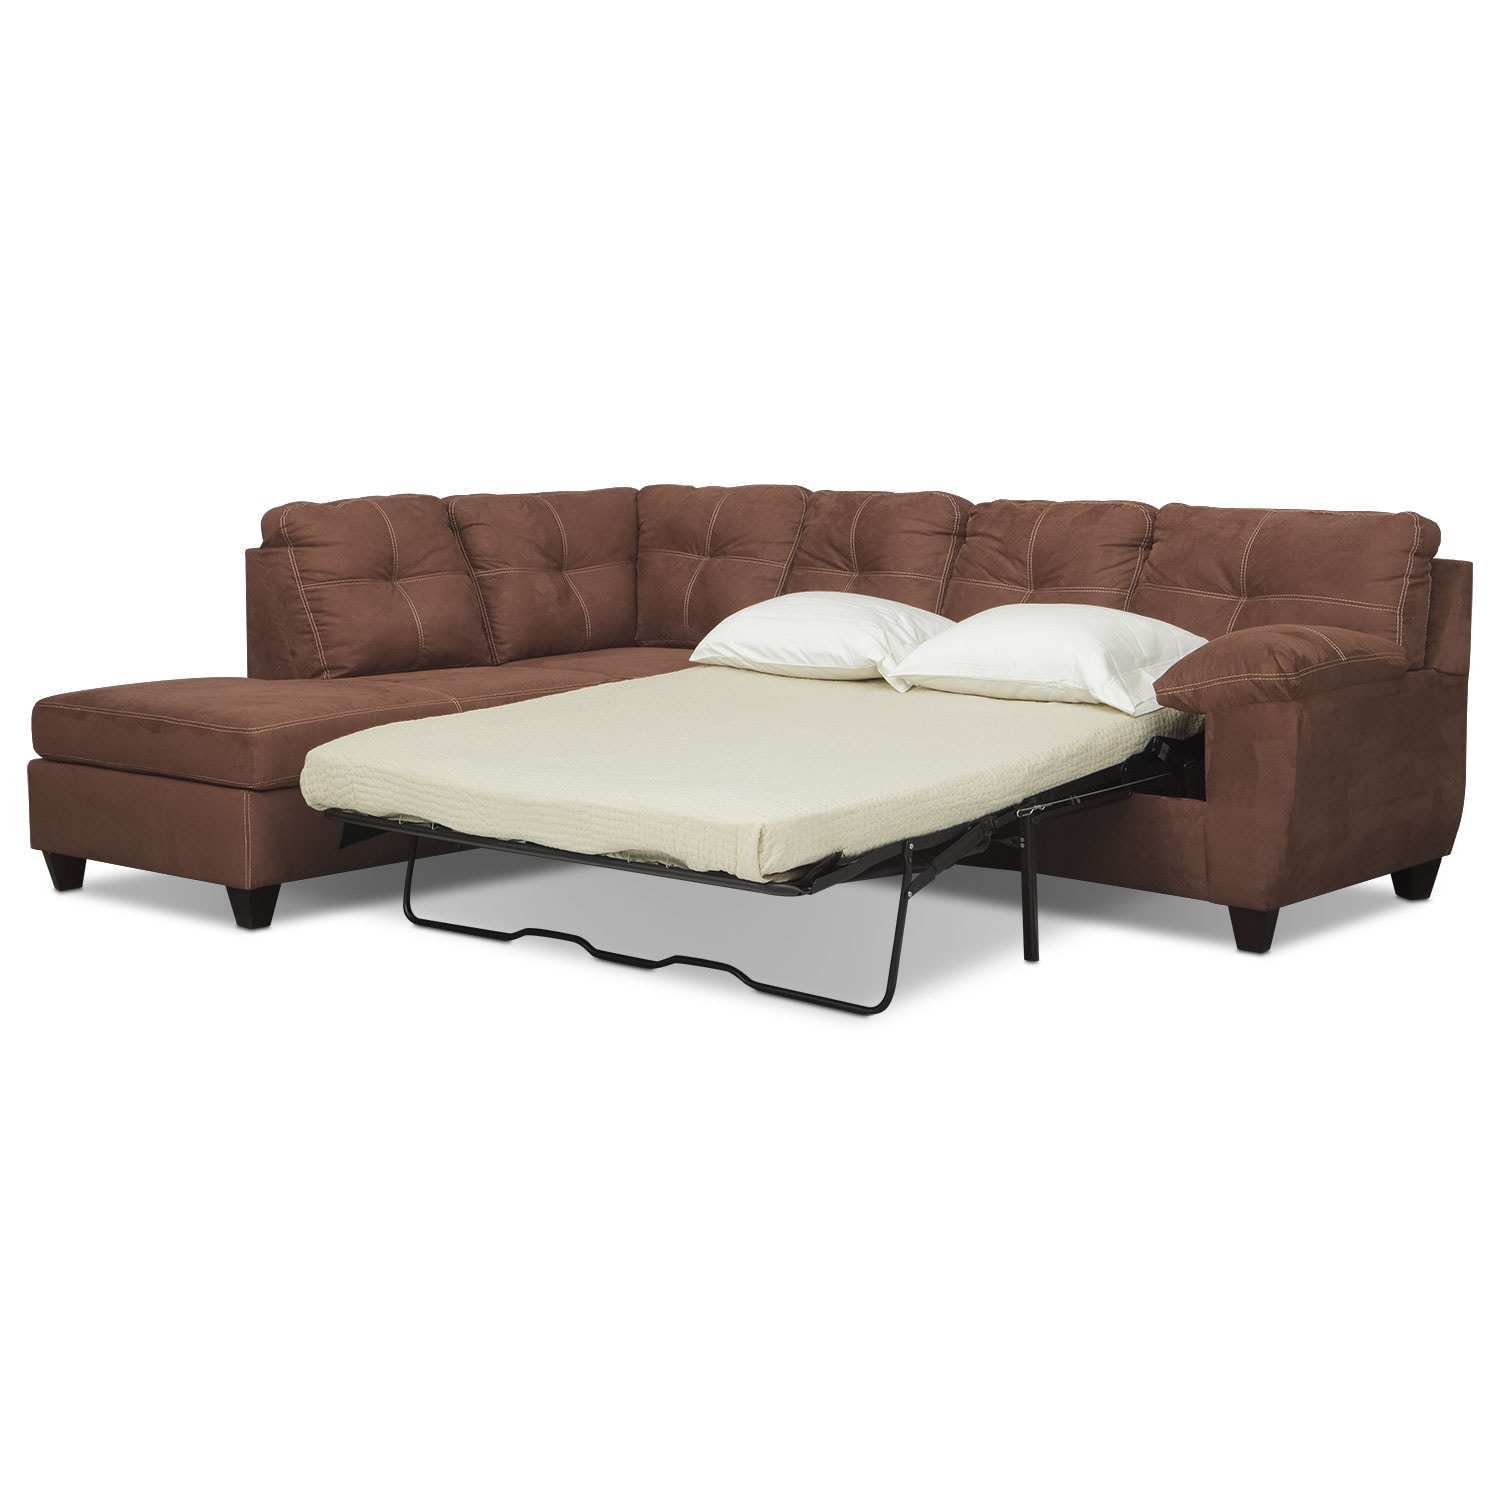 Ricardo 2 piece memory foam sleeper sectional with left for 2 piece sectional sofa with chaise